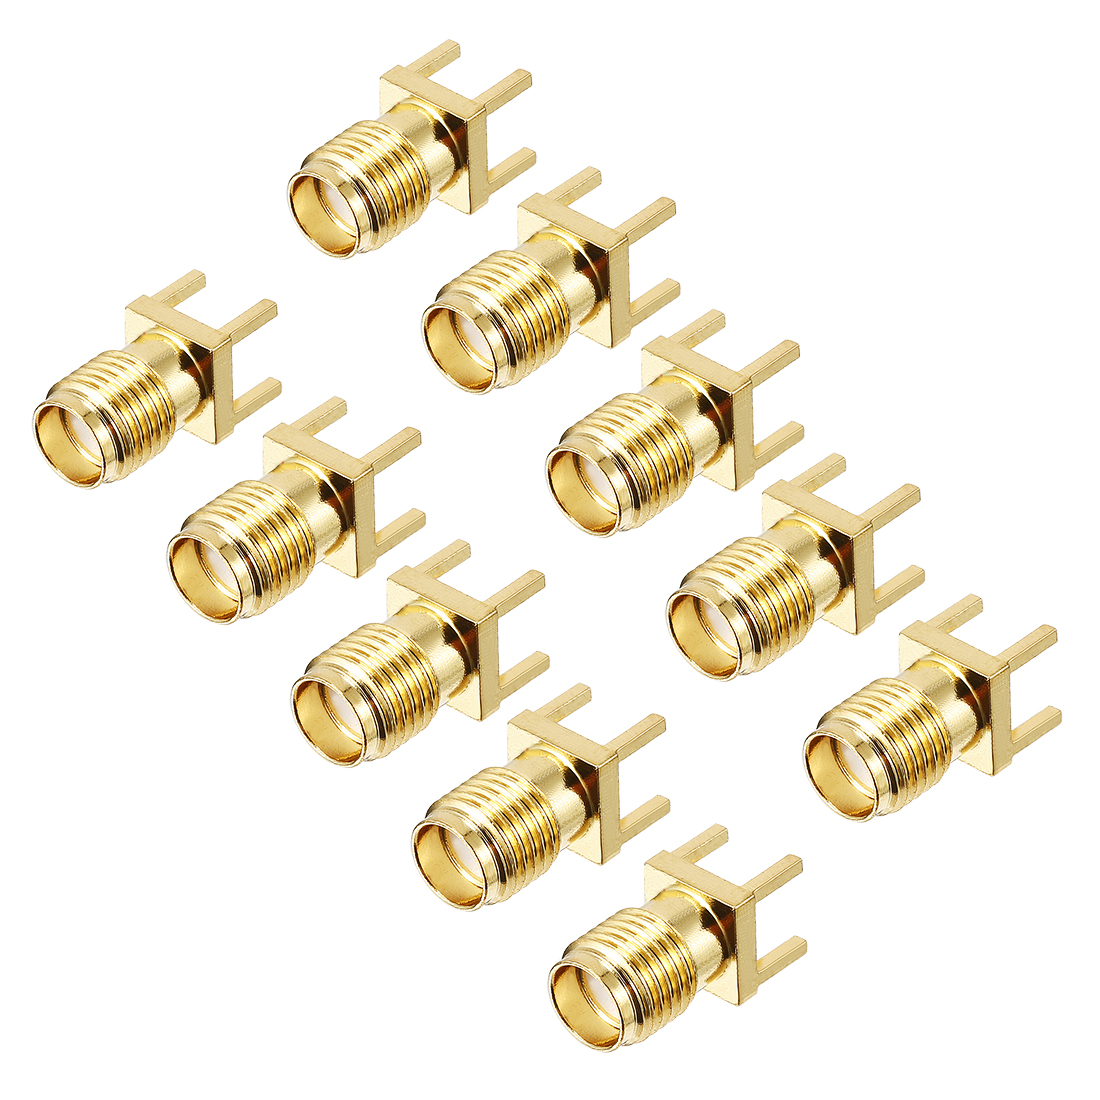 10pcs Gold Tone SMA Female to PCB Positive Pin Jack RF Coaxial Adapter Connector